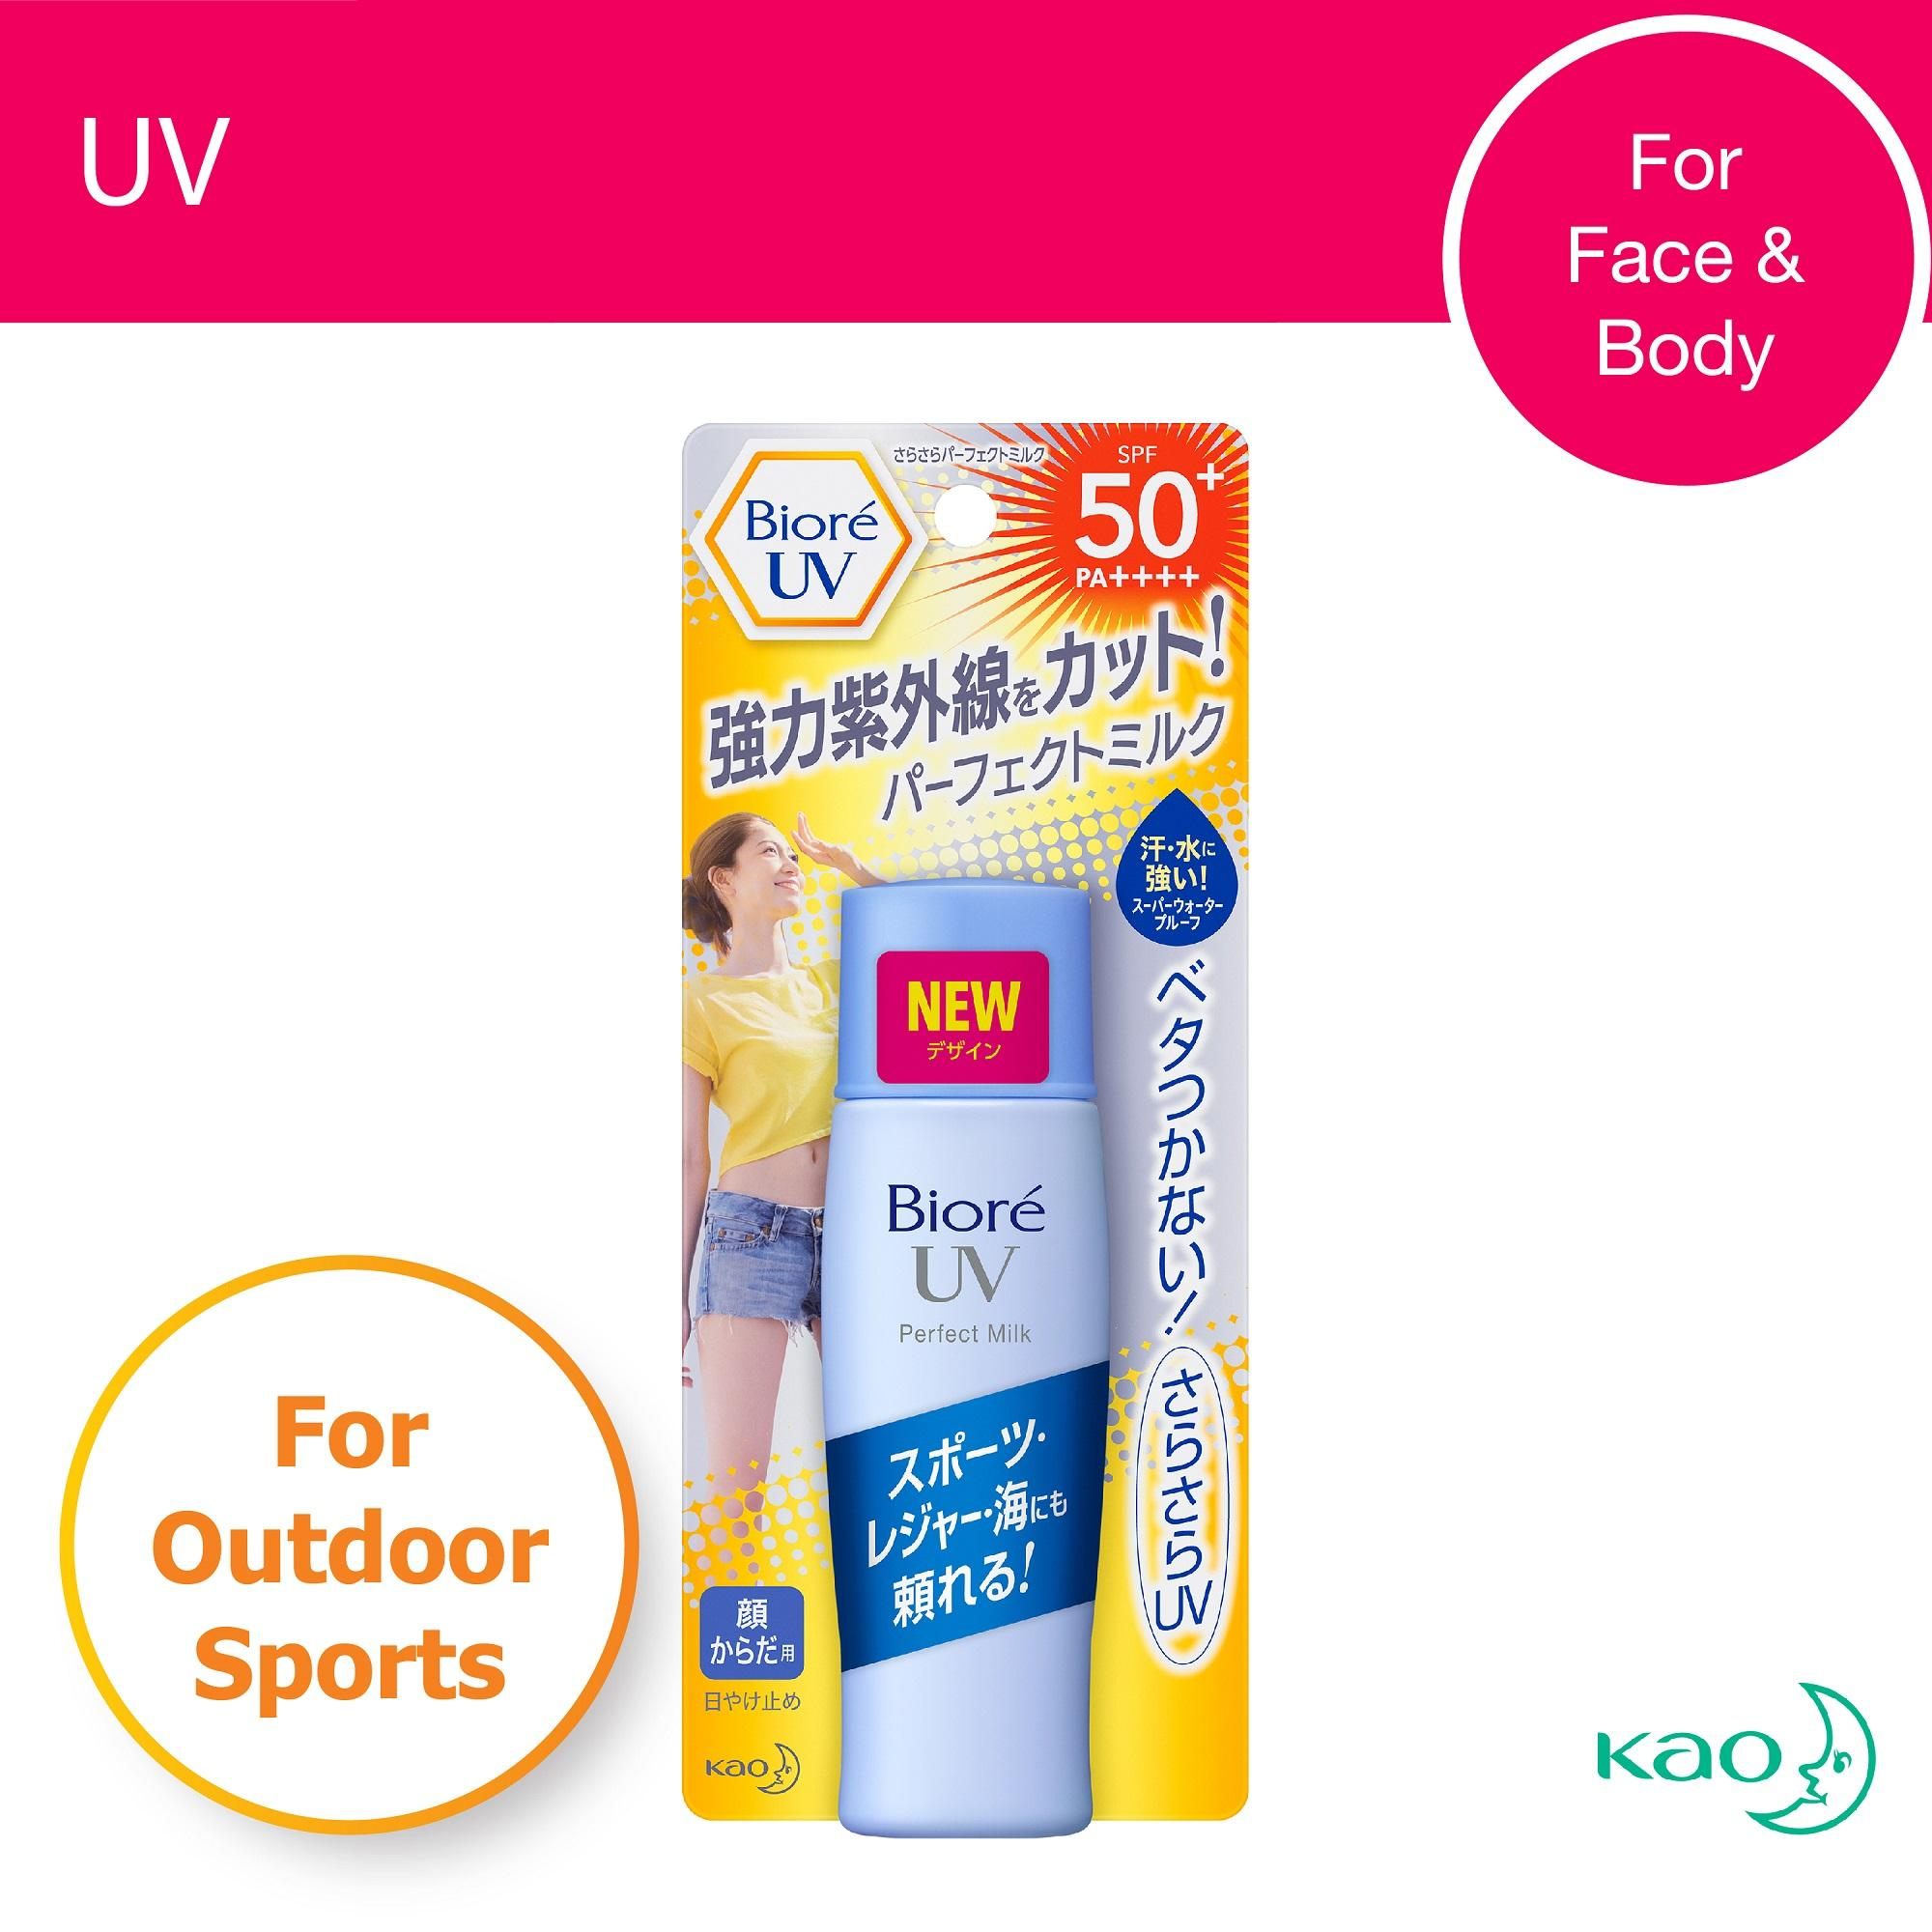 Biore Uv Perfect Milk Spf 50 Pa++++ 40ml By Kao.